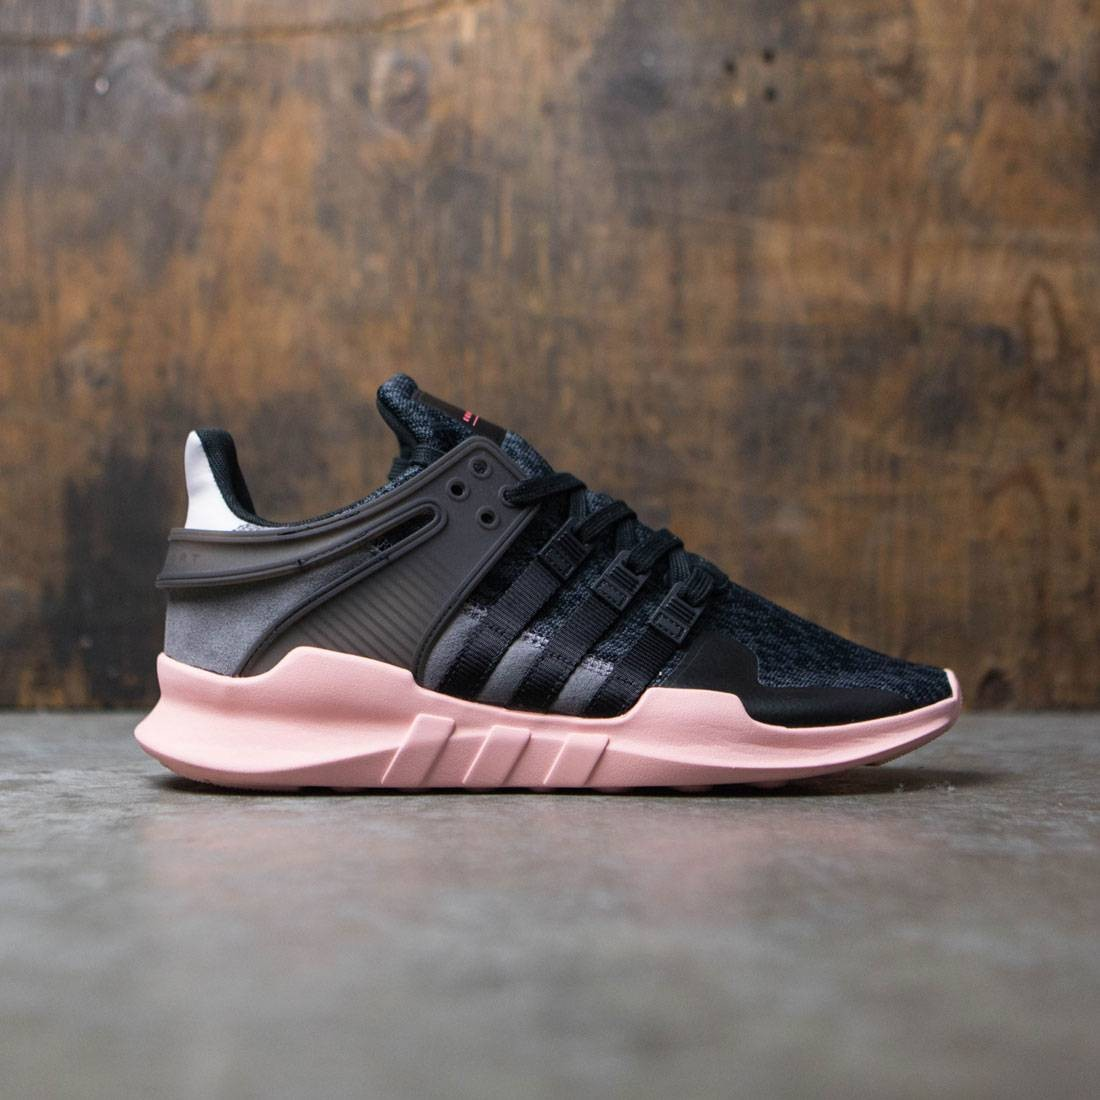 barato Pasado Contrapartida  adidas eqt support adv mujer negro Shop Clothing & Shoes Online